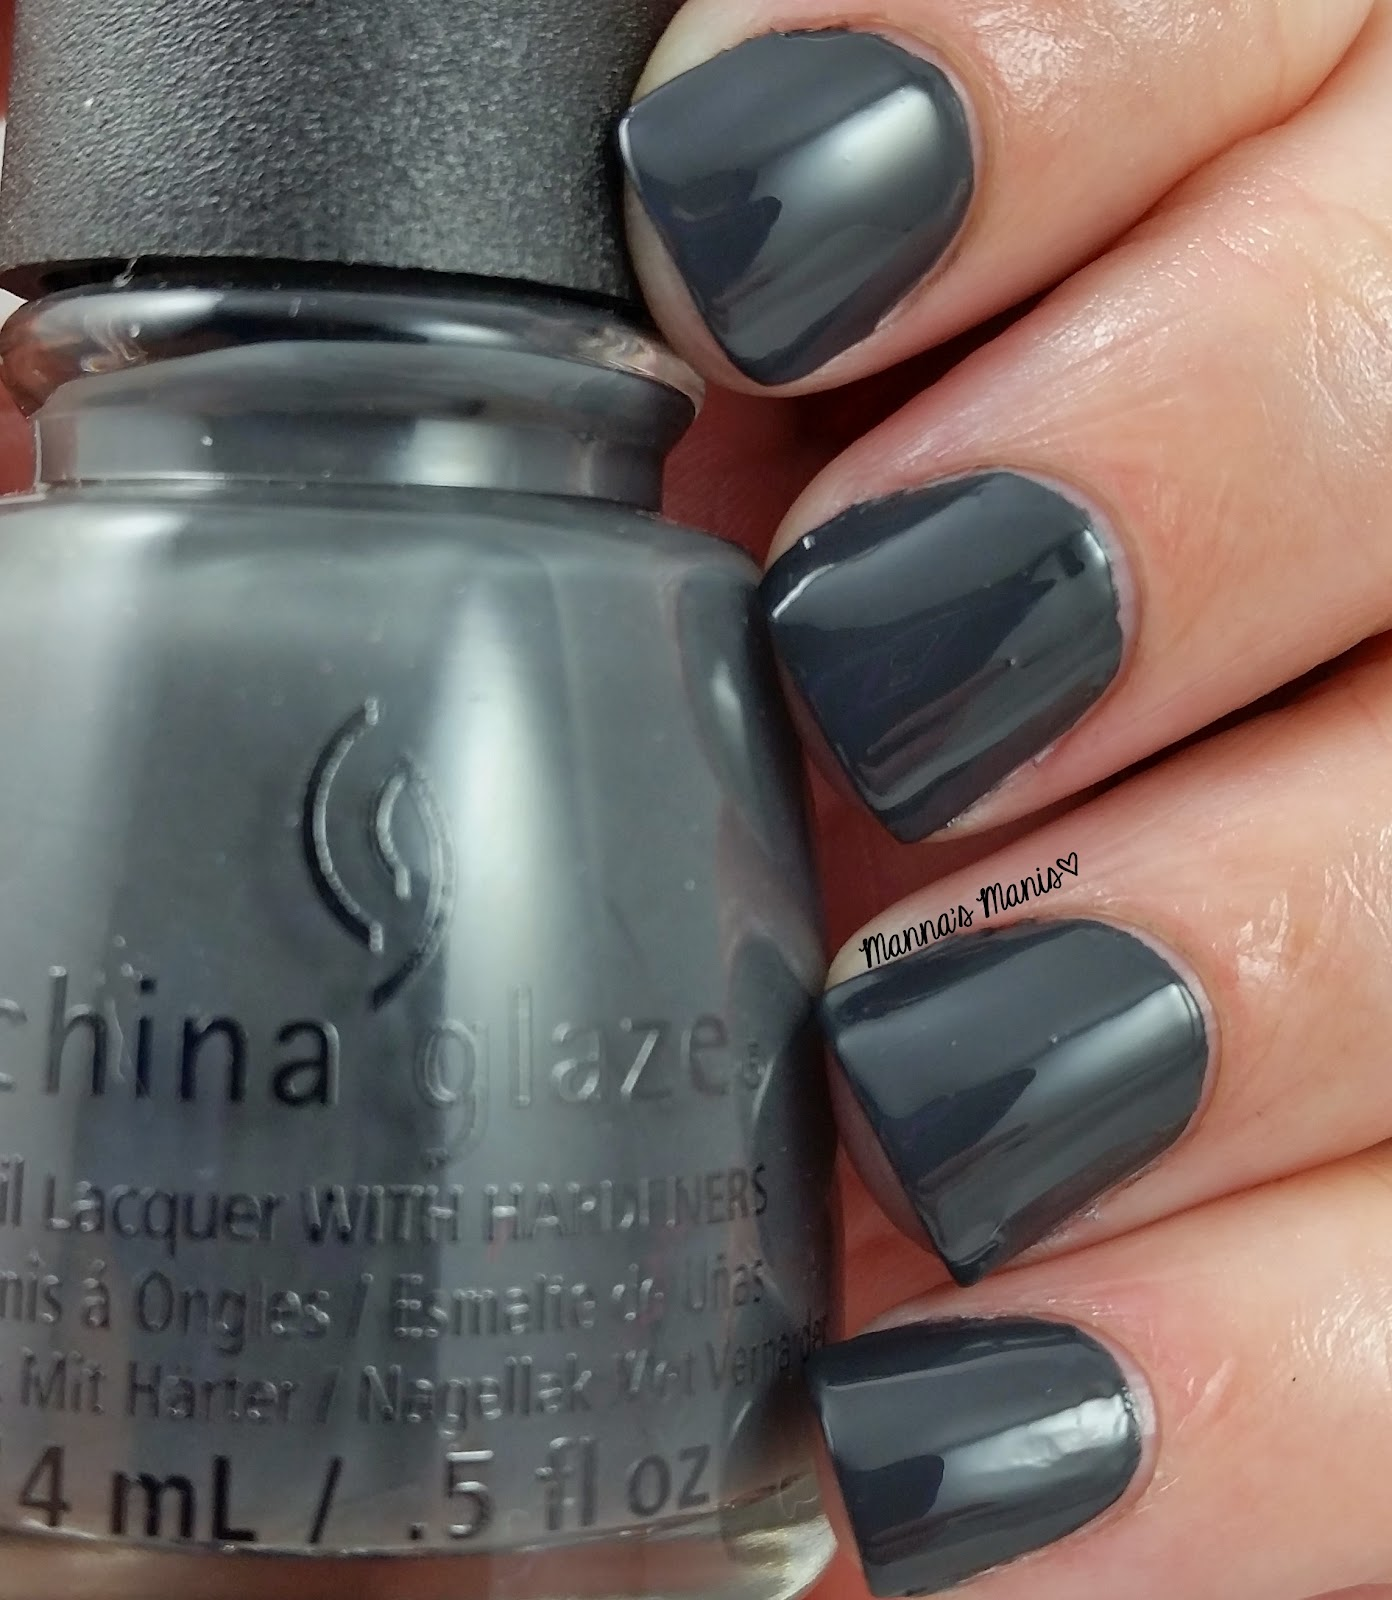 china glaze out like a light, a gray creme nail polish